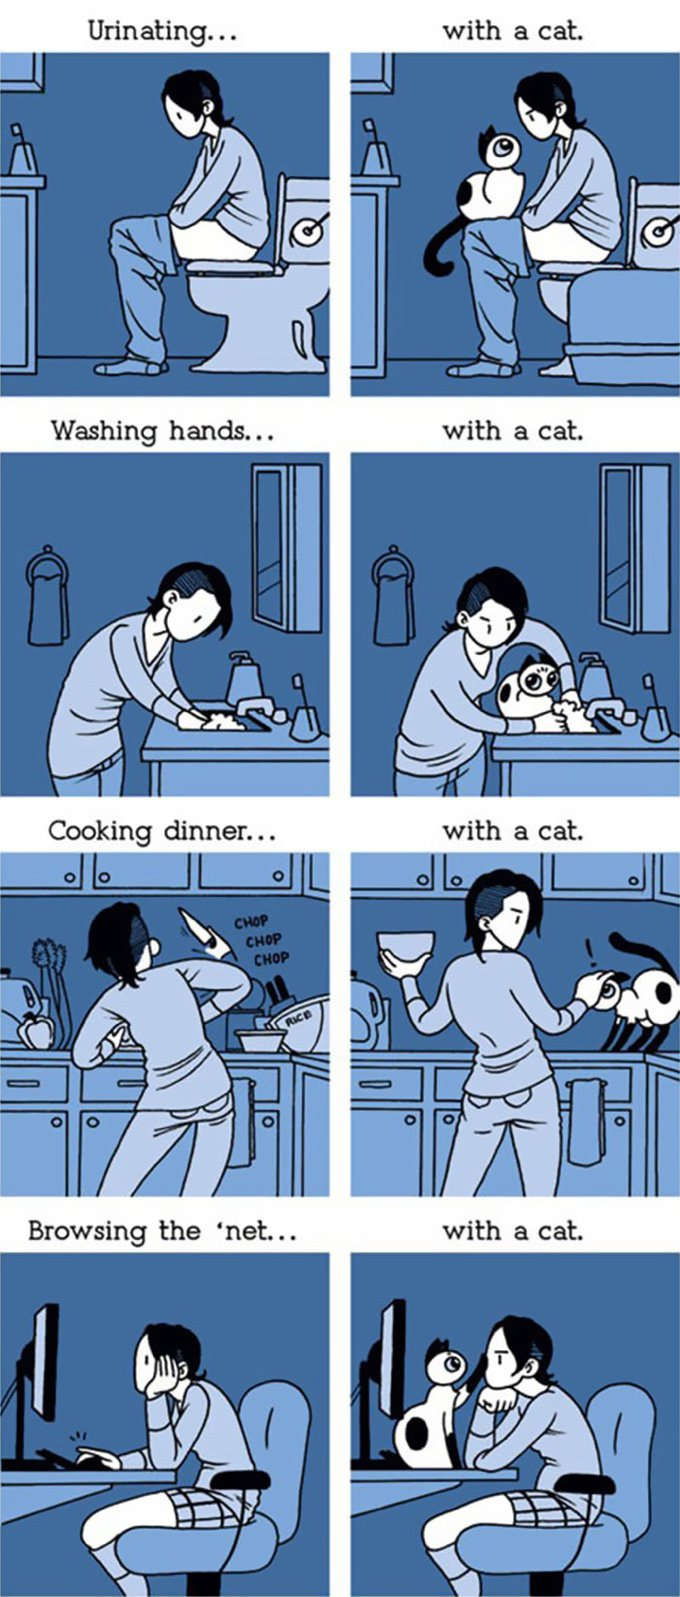 blog_yummypets_the_reality_of_living_with_cats_02_10_2015